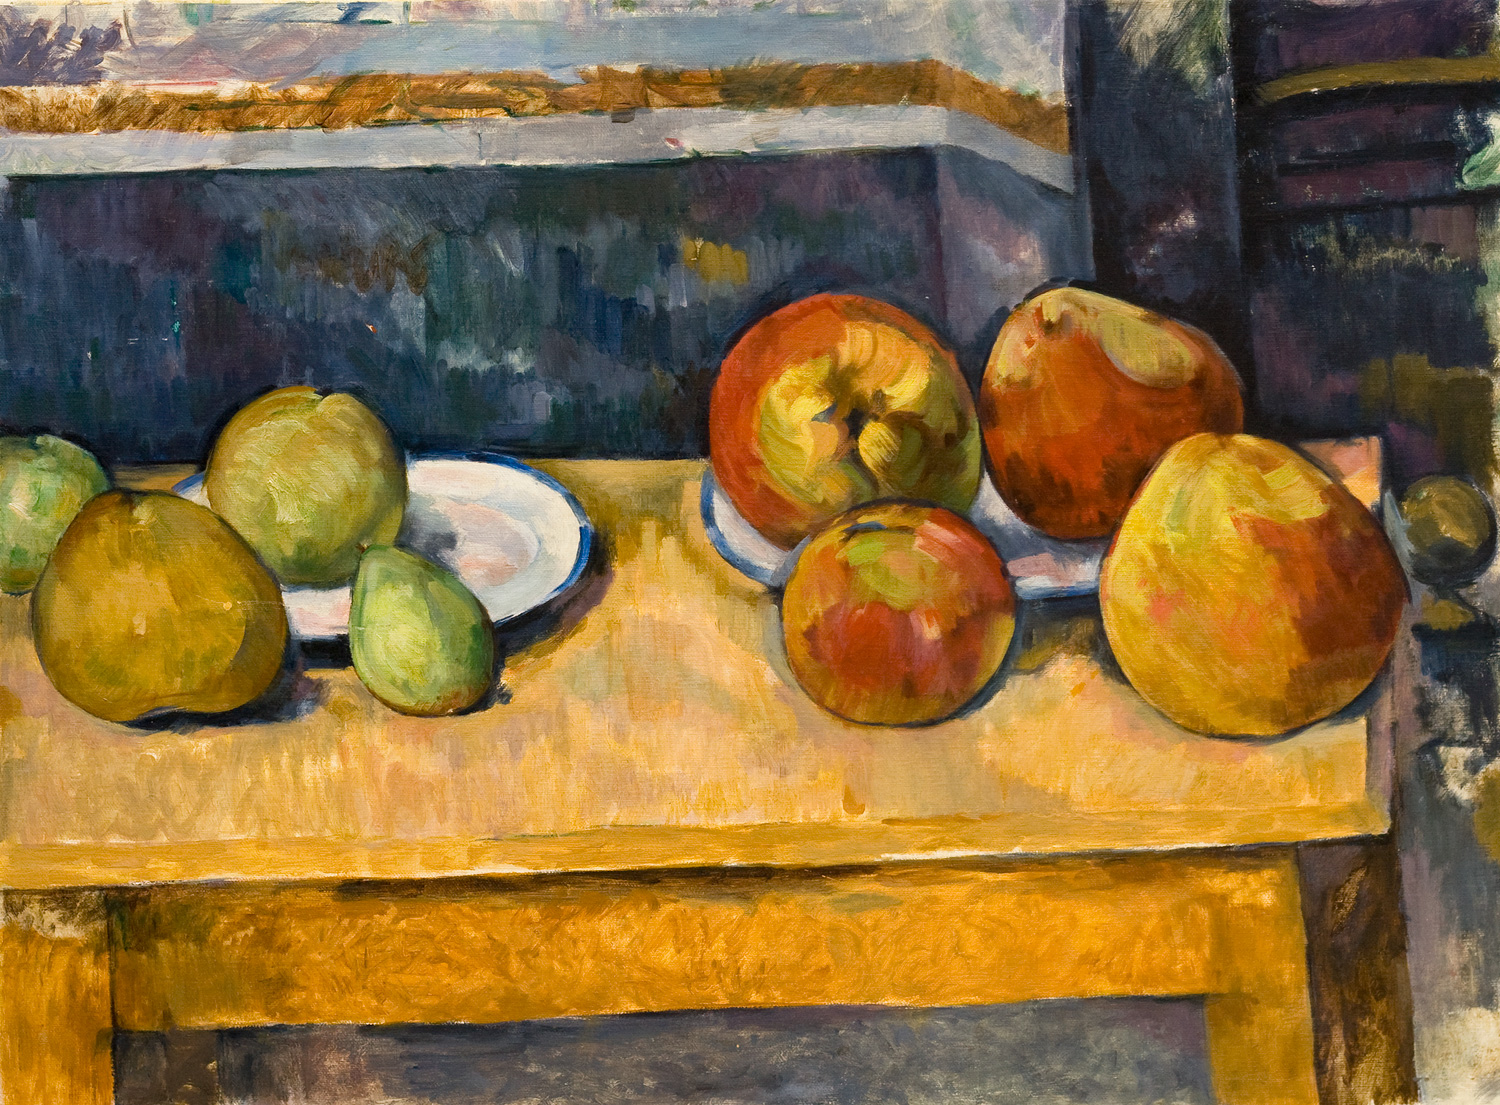 """Apples and Pears  after Paul Cezanné  Oil/canvas 19.5"""" X 25.5"""" 2005 Painted from the original at the Metropolitan Museum of Art, NY NY"""